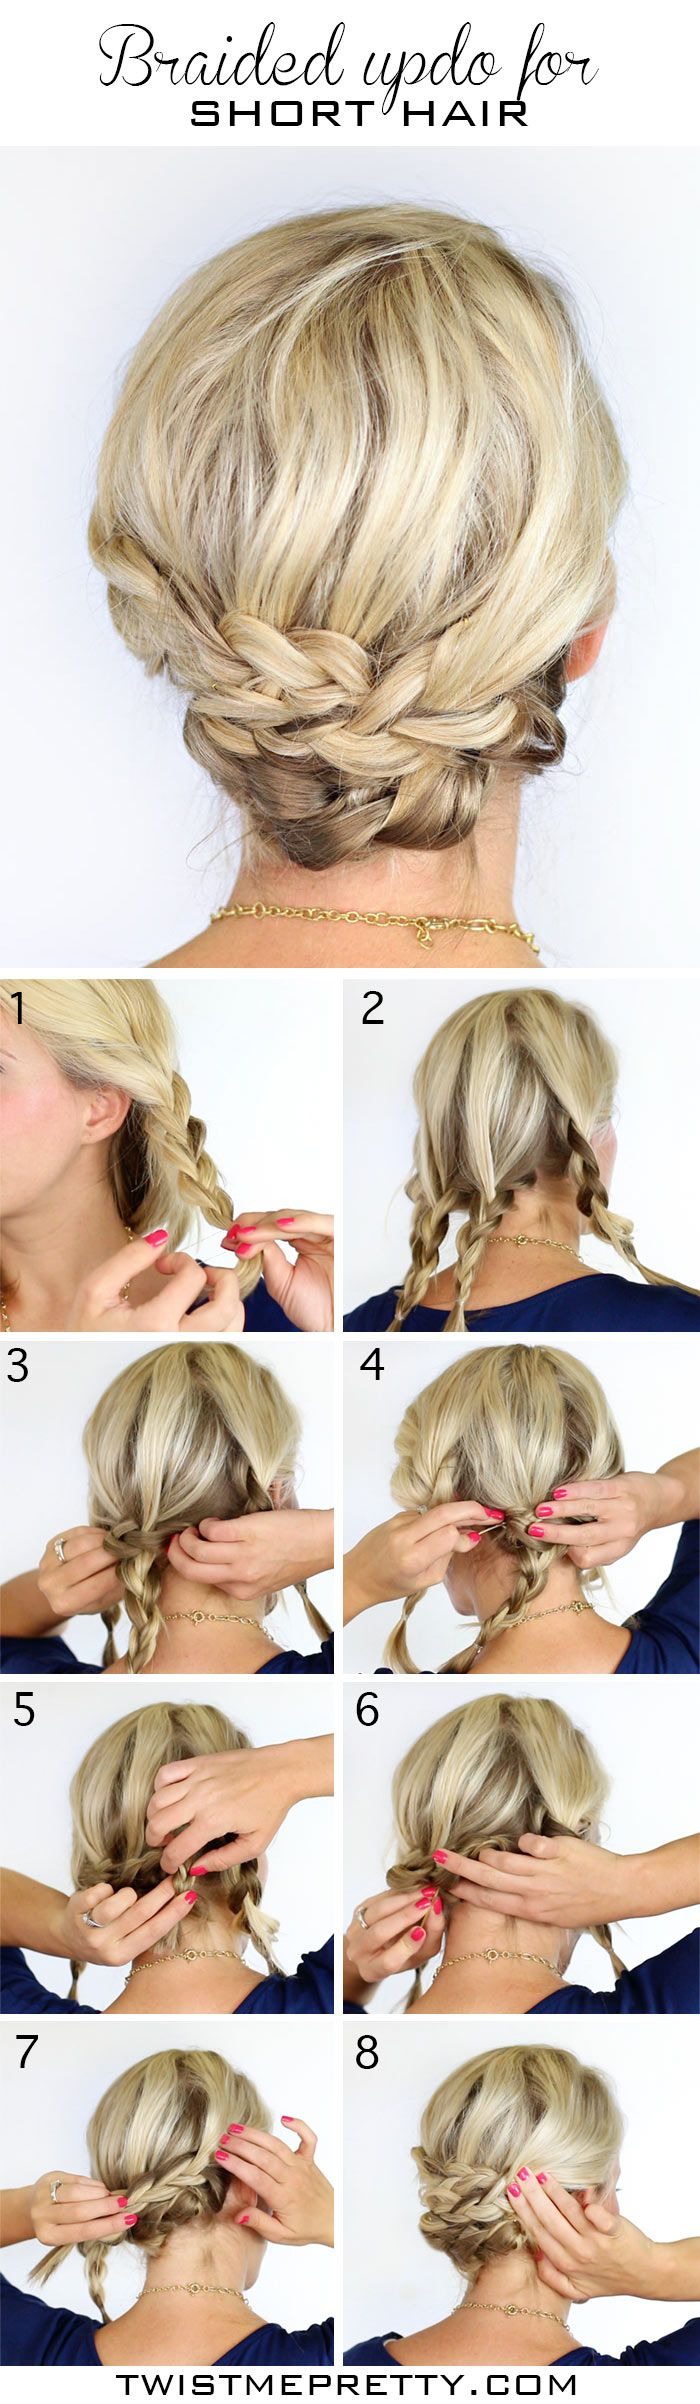 Astounding 12 Pretty Braided Hairstyles For Short Hair Pretty Designs Short Hairstyles Gunalazisus